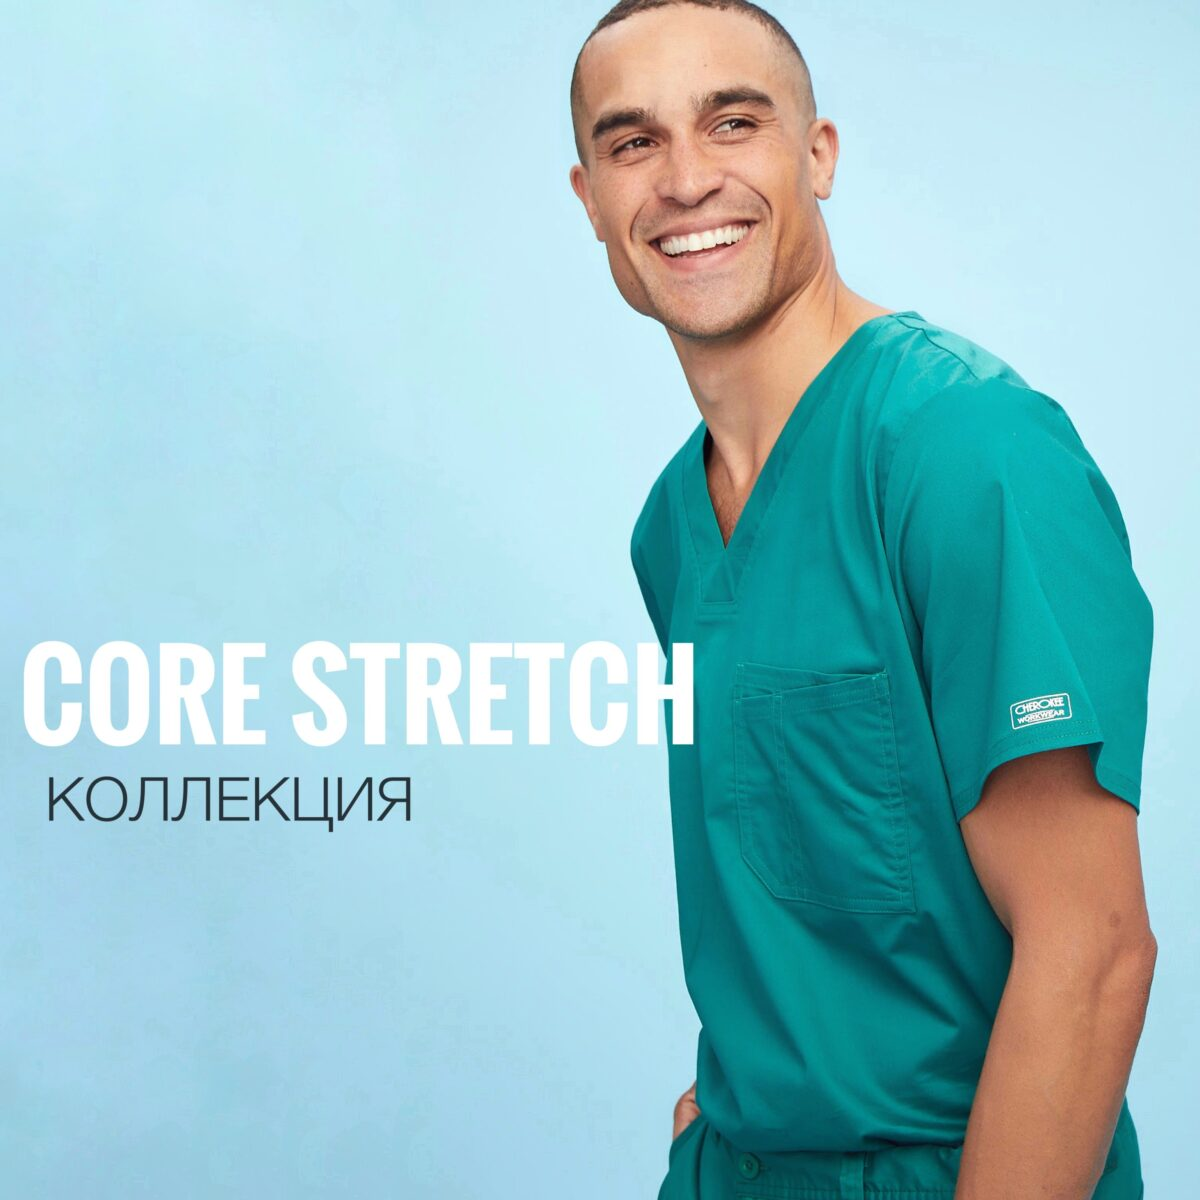 Коллекция Core Stretch